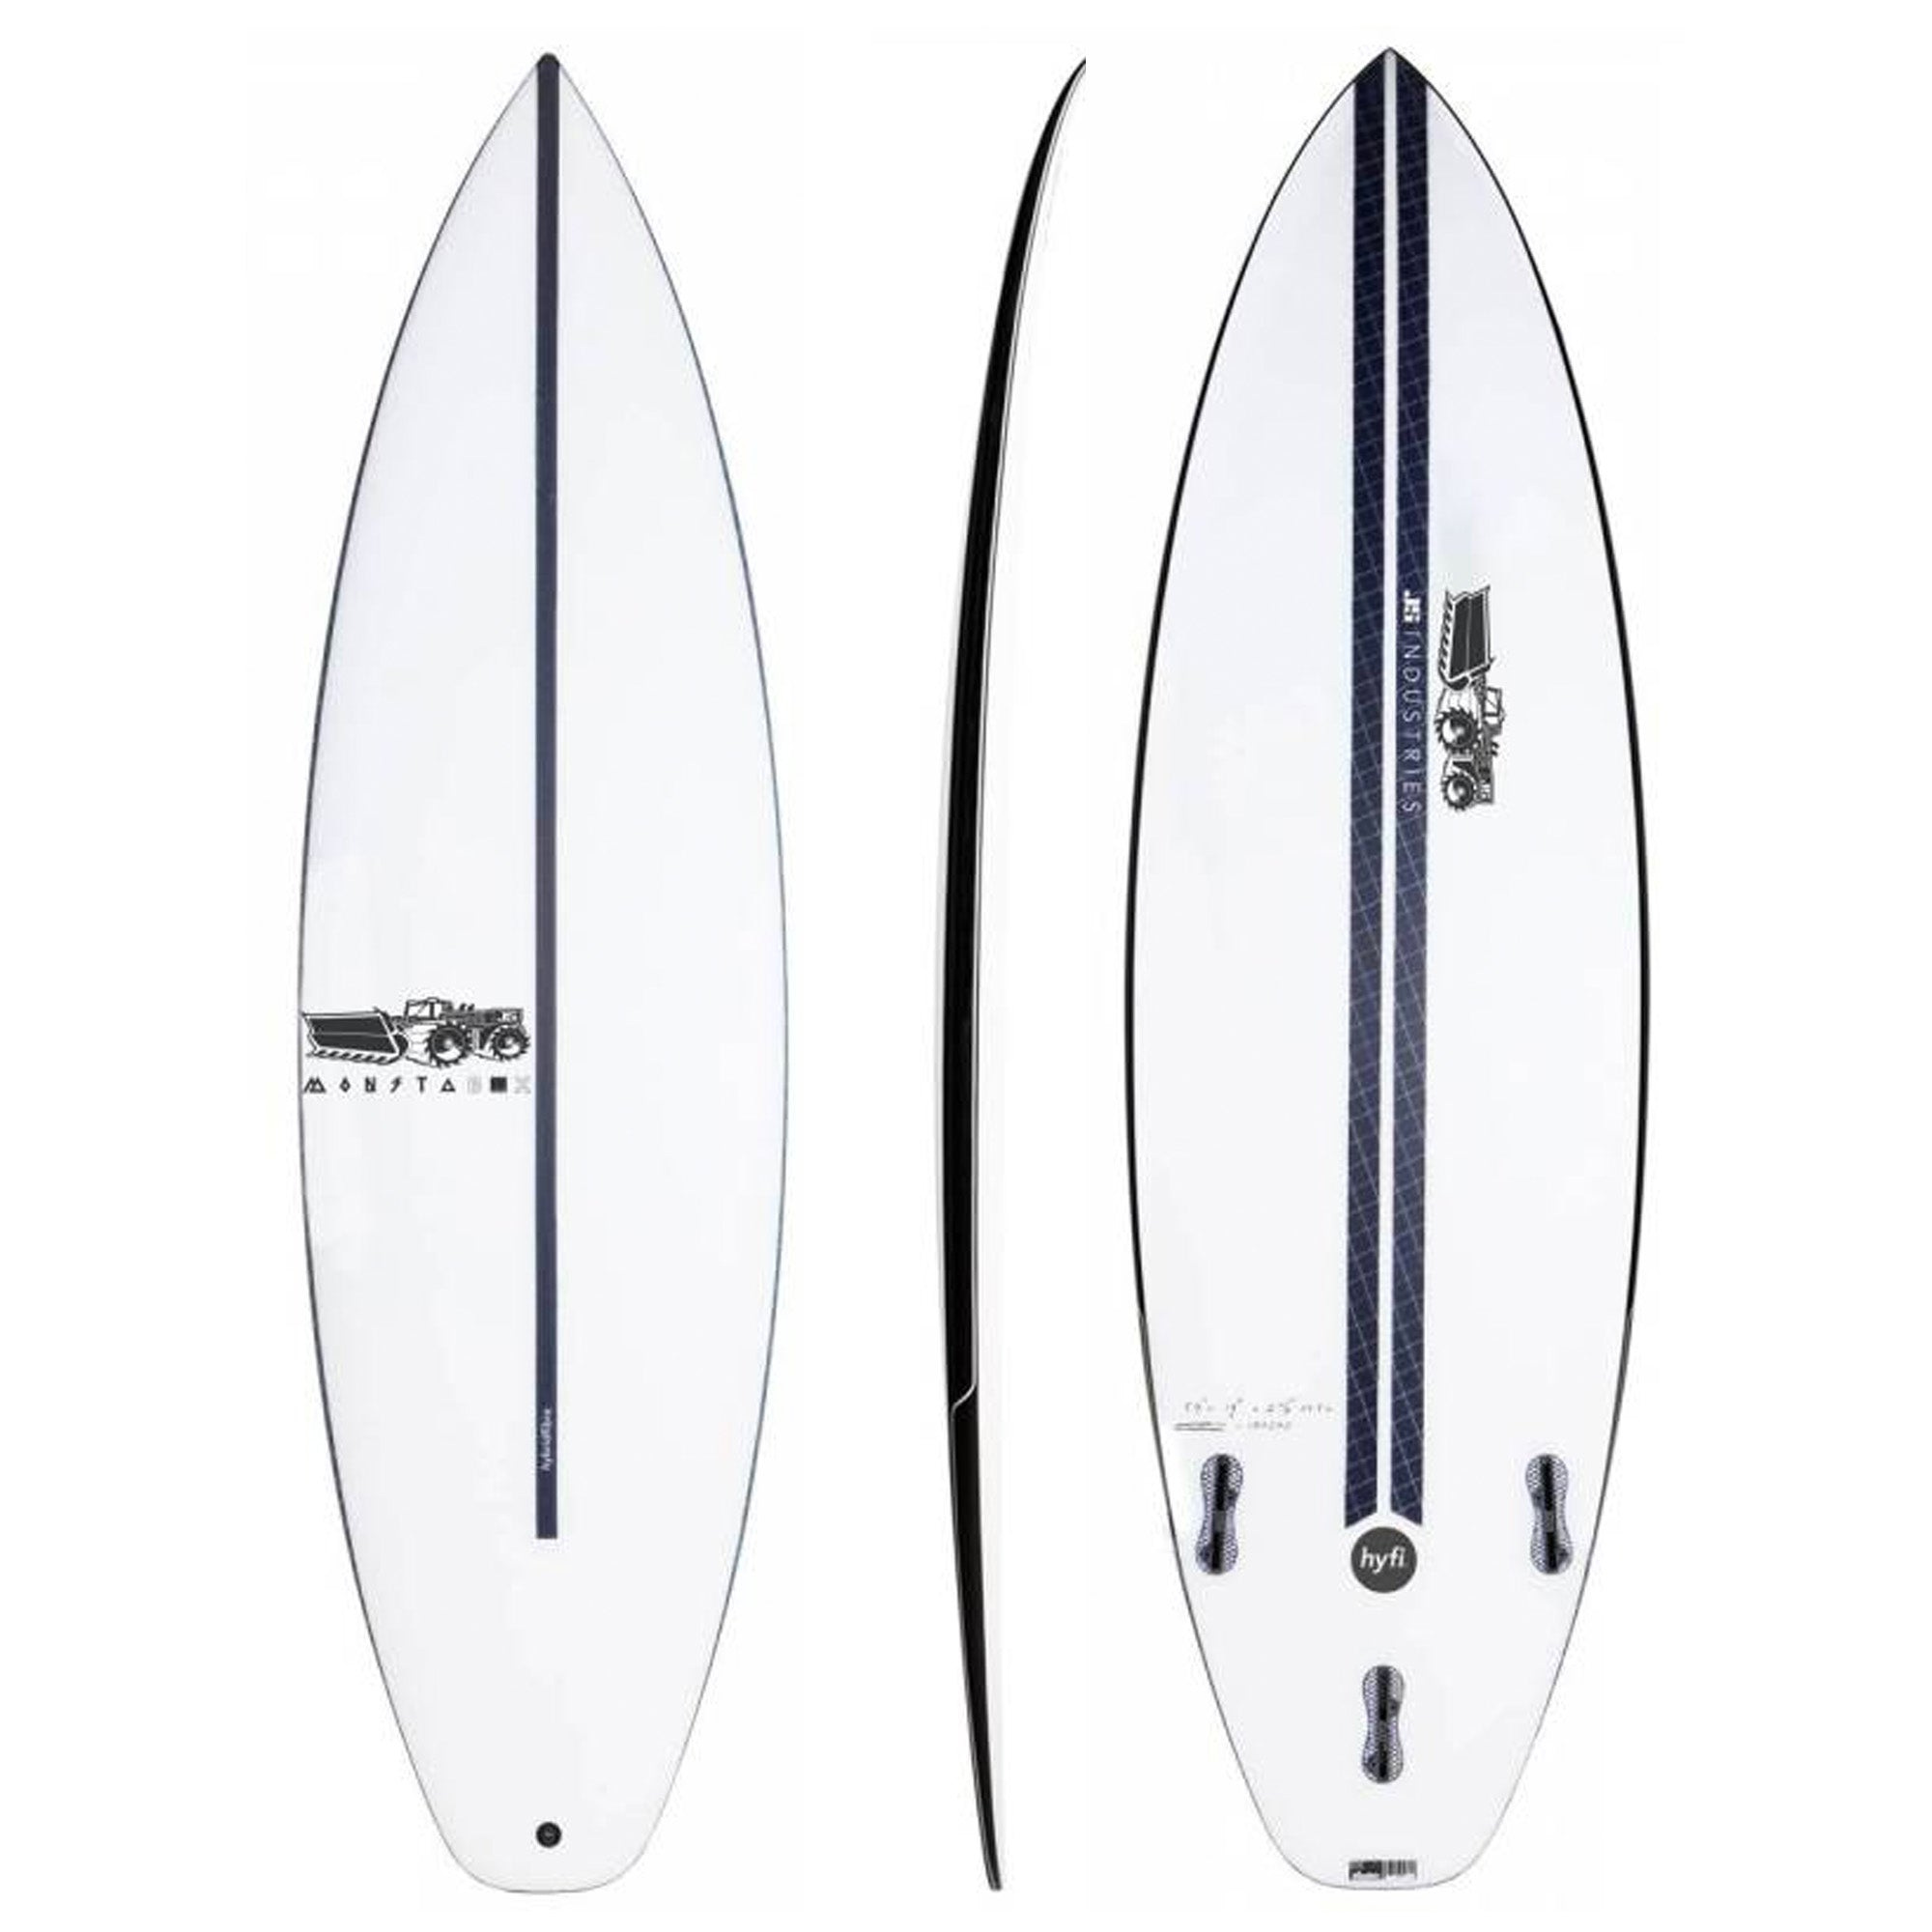 JS Industries Monsta Box 2020 Squash Tail Surfboard - HYFI